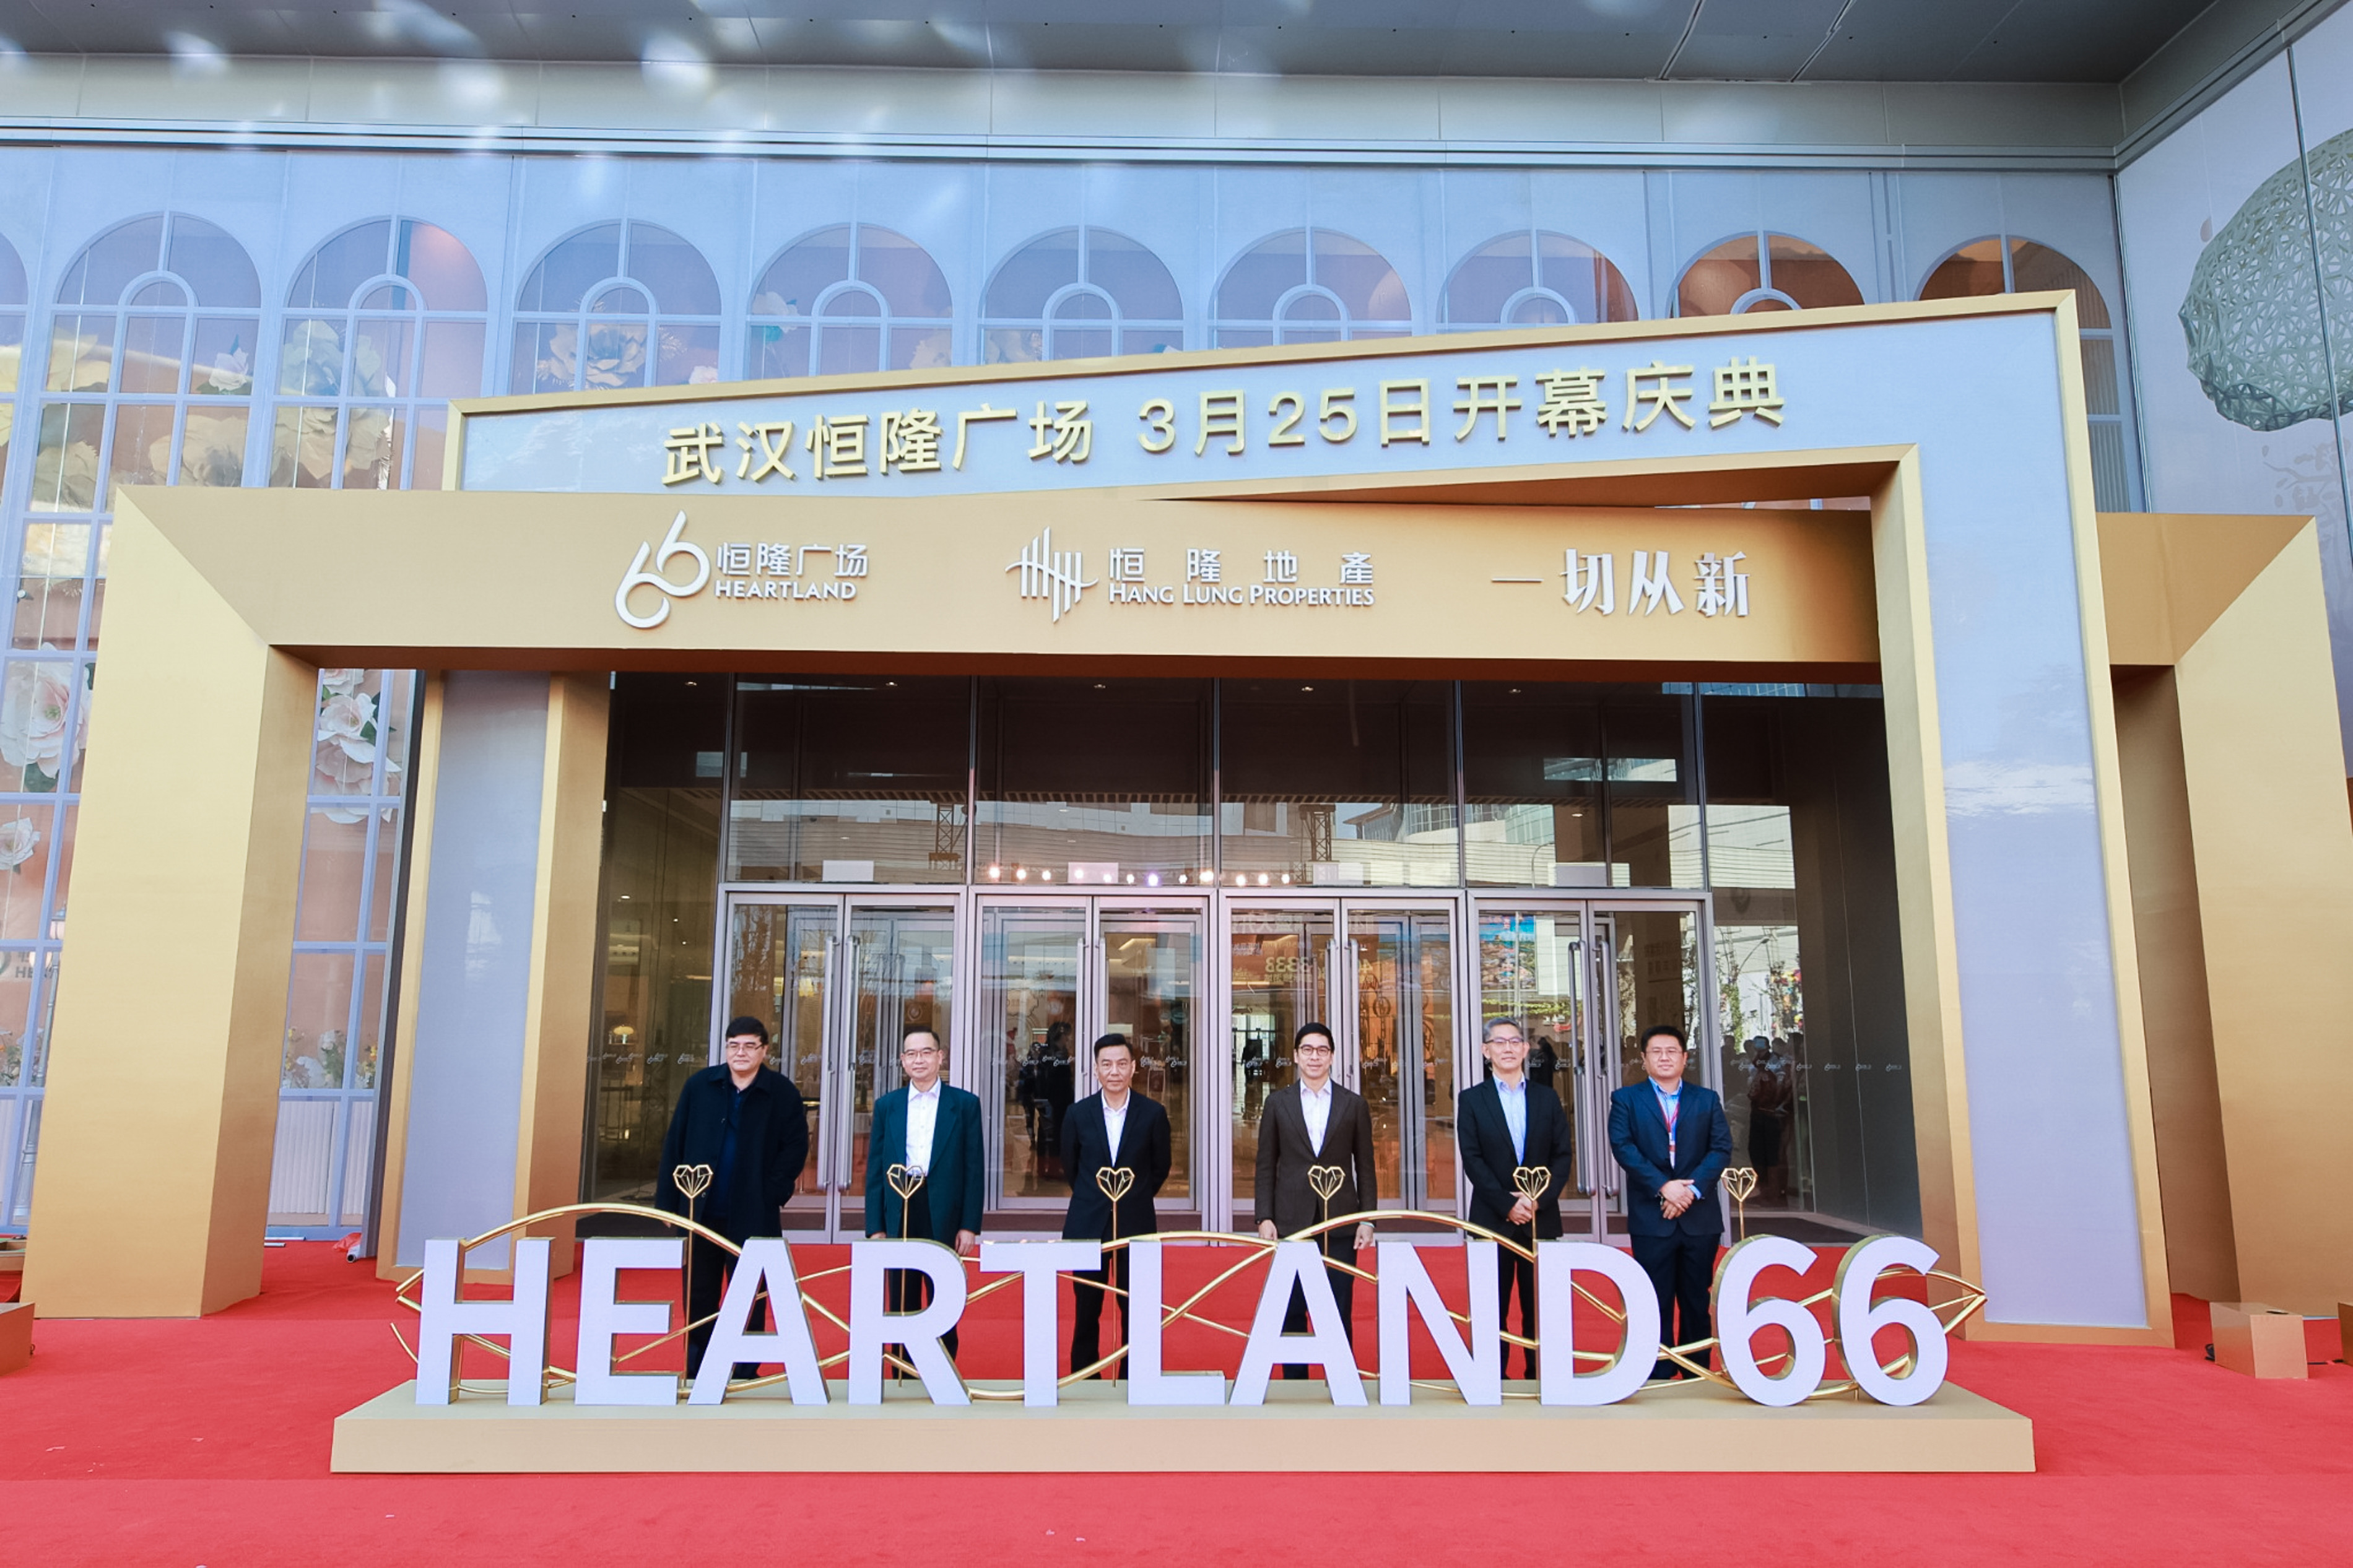 Mr. Adriel Chan, Vice Chair (third from the right), and Mr. Billy Ip, General Manager – Heartland 66 (third from the left), together with government officials at the Opening Ceremony of Heartland 66 in Wuhan